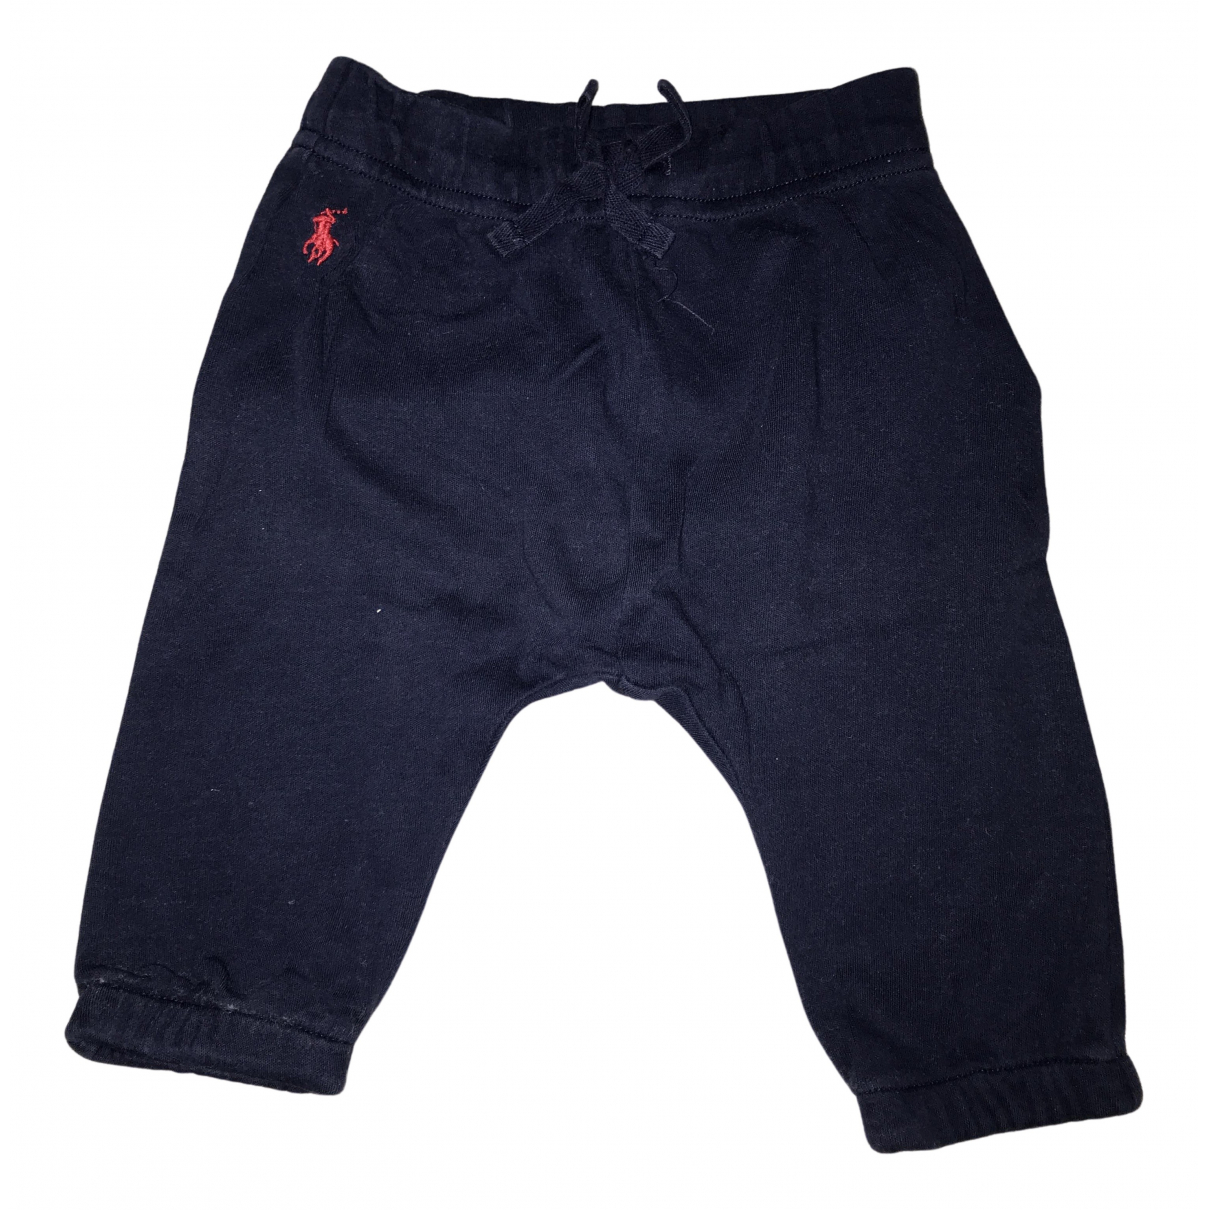 Ralph Lauren N Blue Cotton Trousers for Kids 6 months - up to 67cm FR